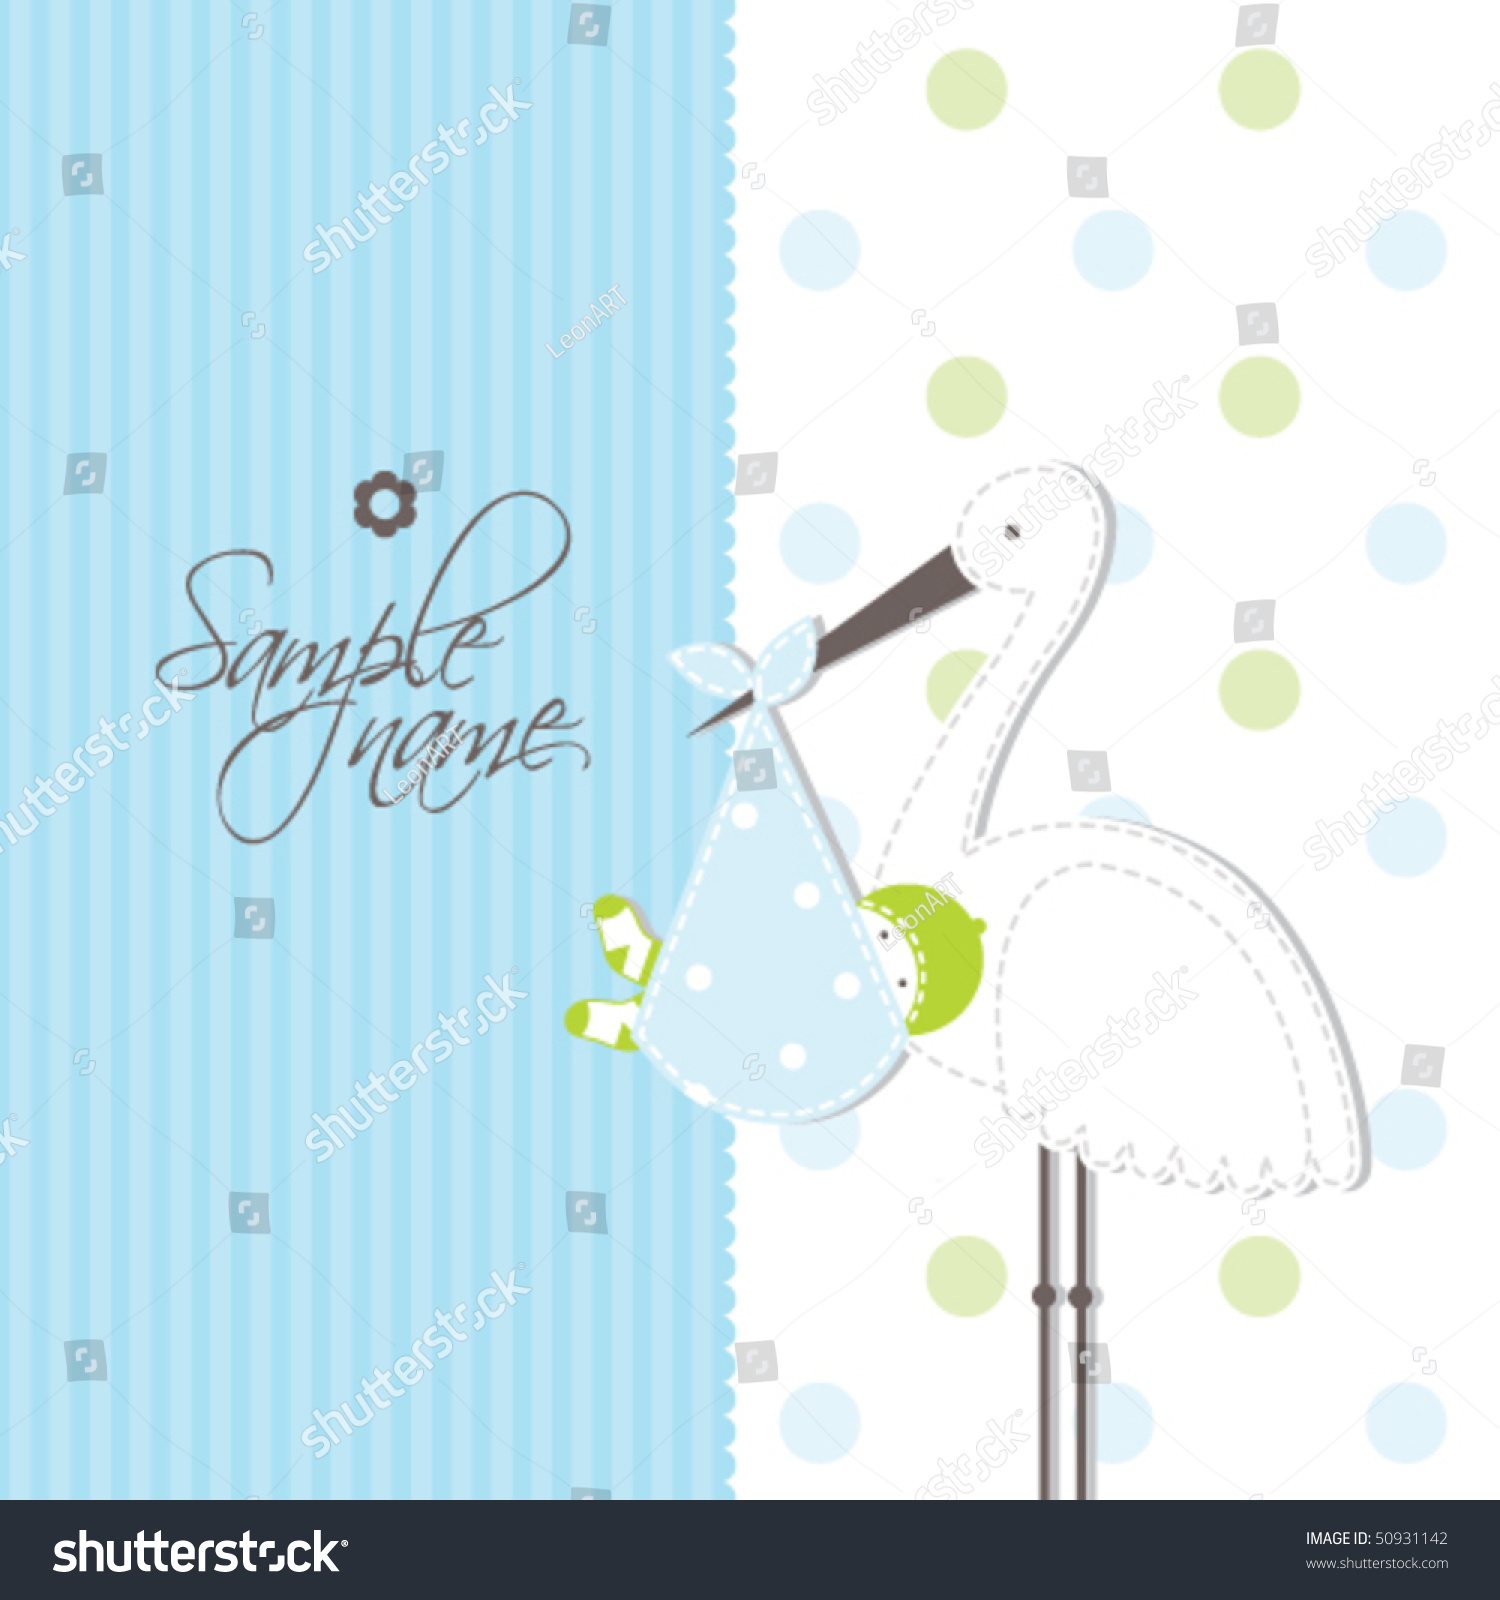 Baby Shower Arts And Crafts Part - 44: Baby Card - Boy Arrival Announcement Card Cute Illustration For Baby Shower,  Greeting Card,